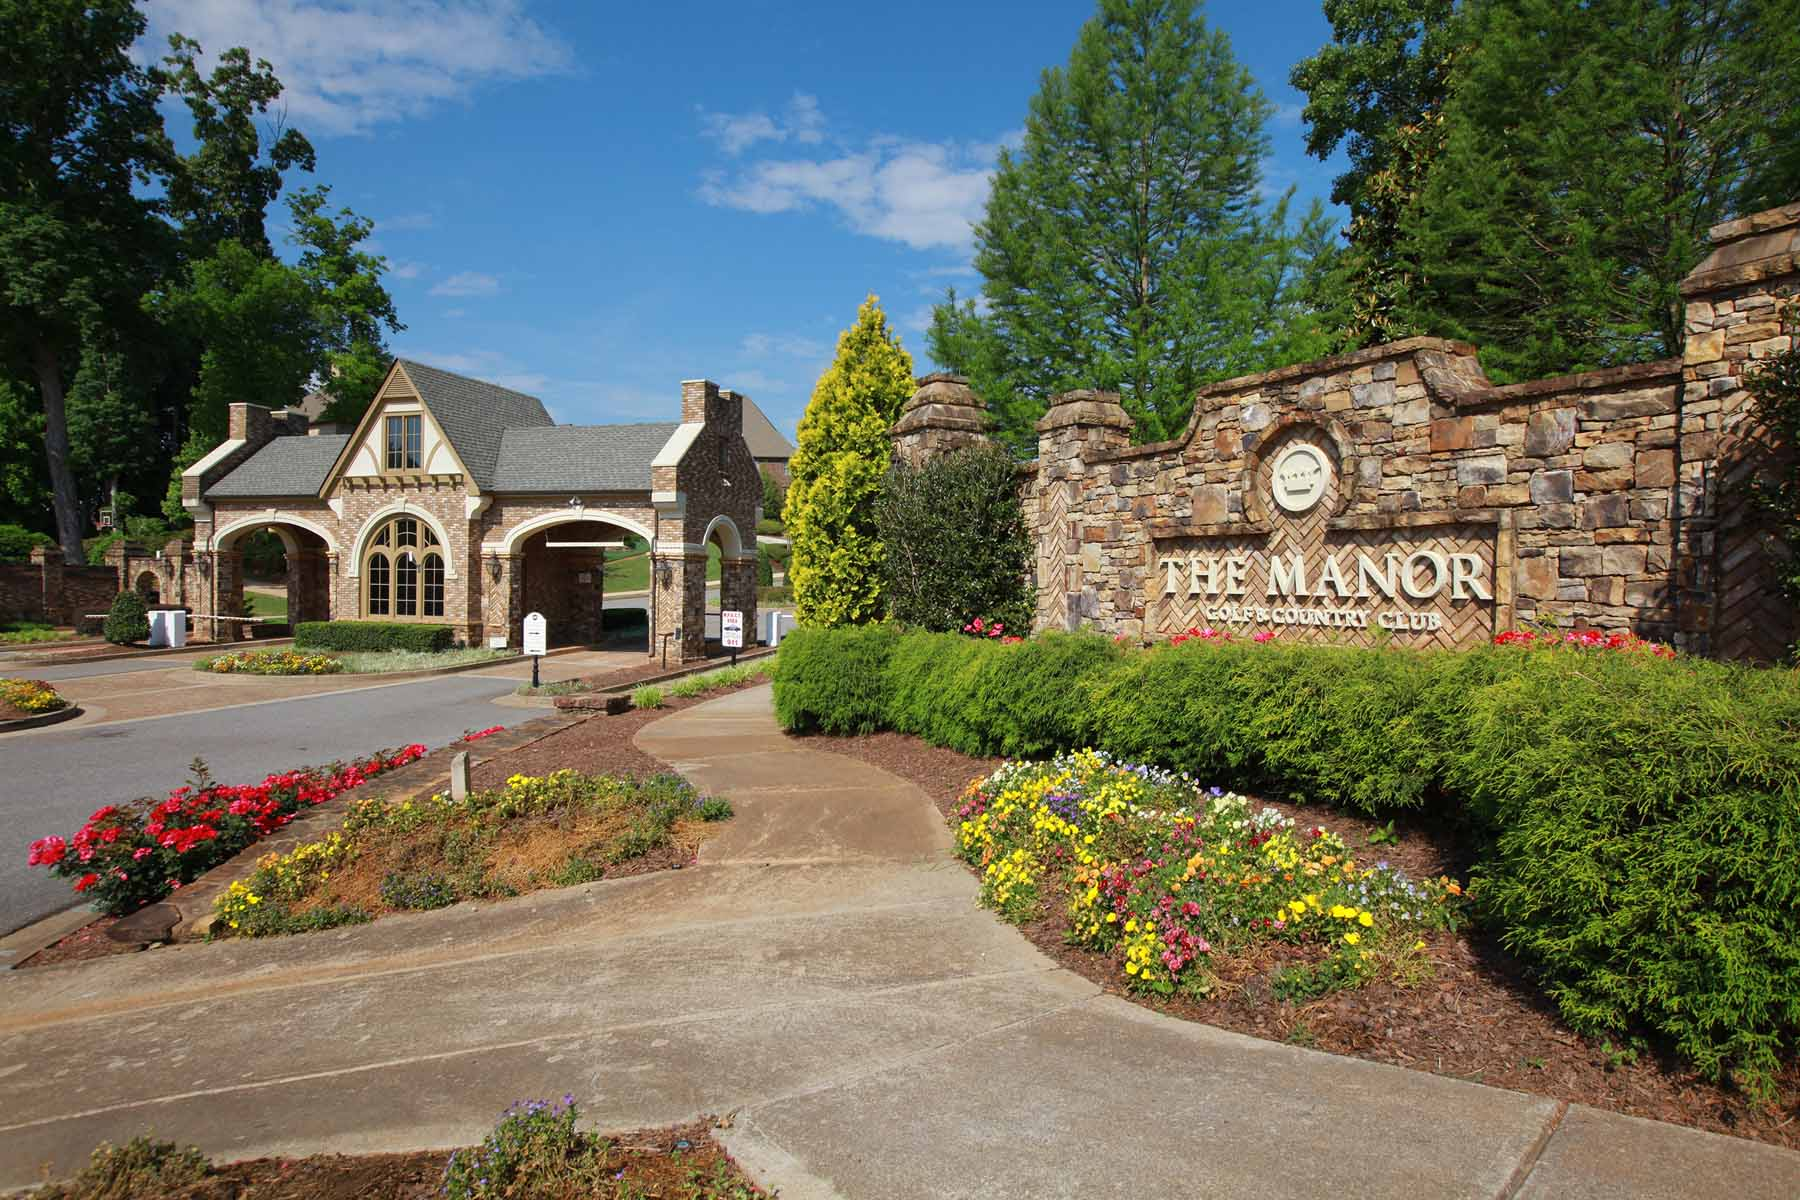 Single Family Home for Sale at Grand European Estate With Expansive Views of the Fairways 16025 Manor Club Drive Milton, Georgia 30004 United States